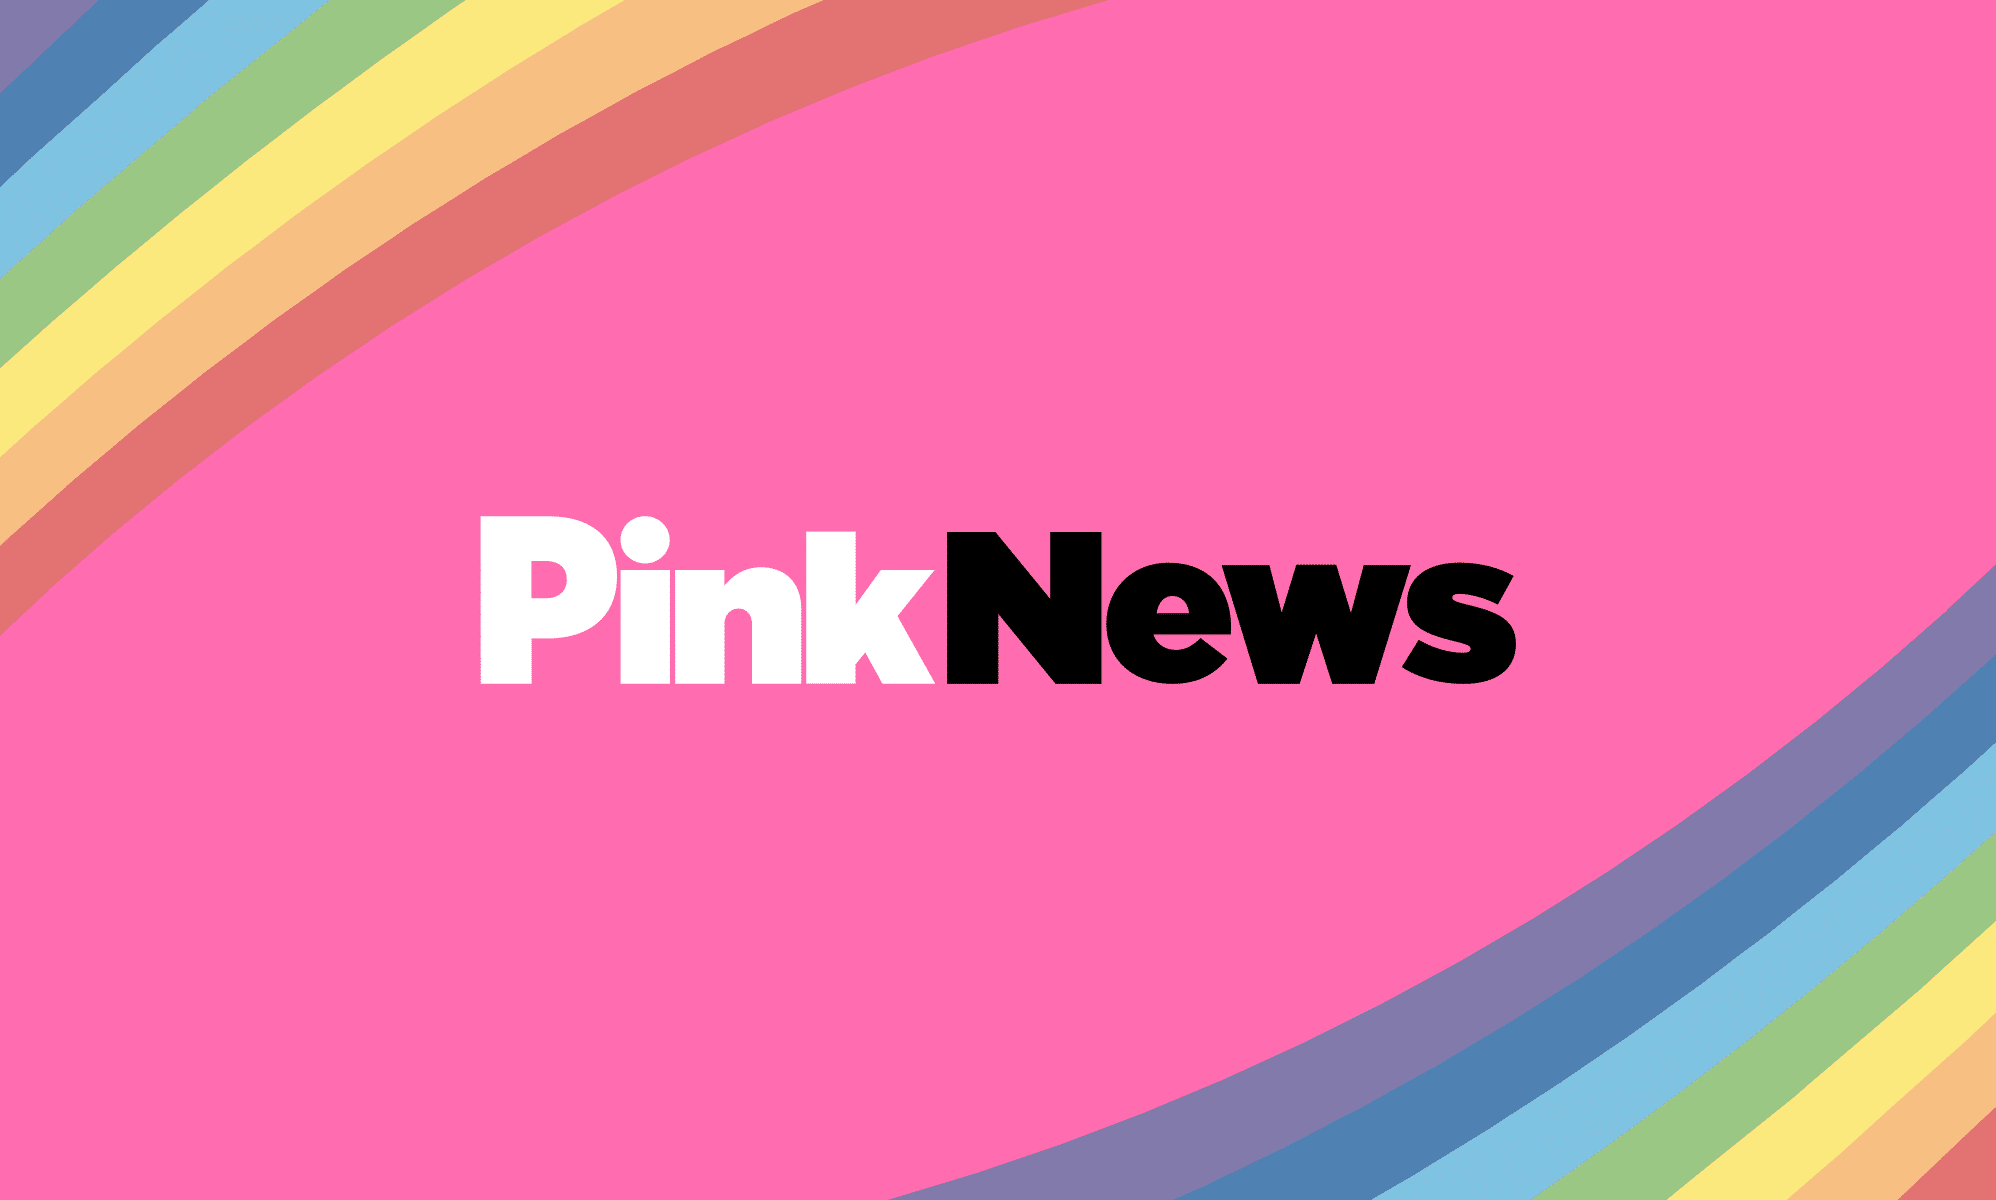 Donate to PinkNews.co.uk to support our award winning news service